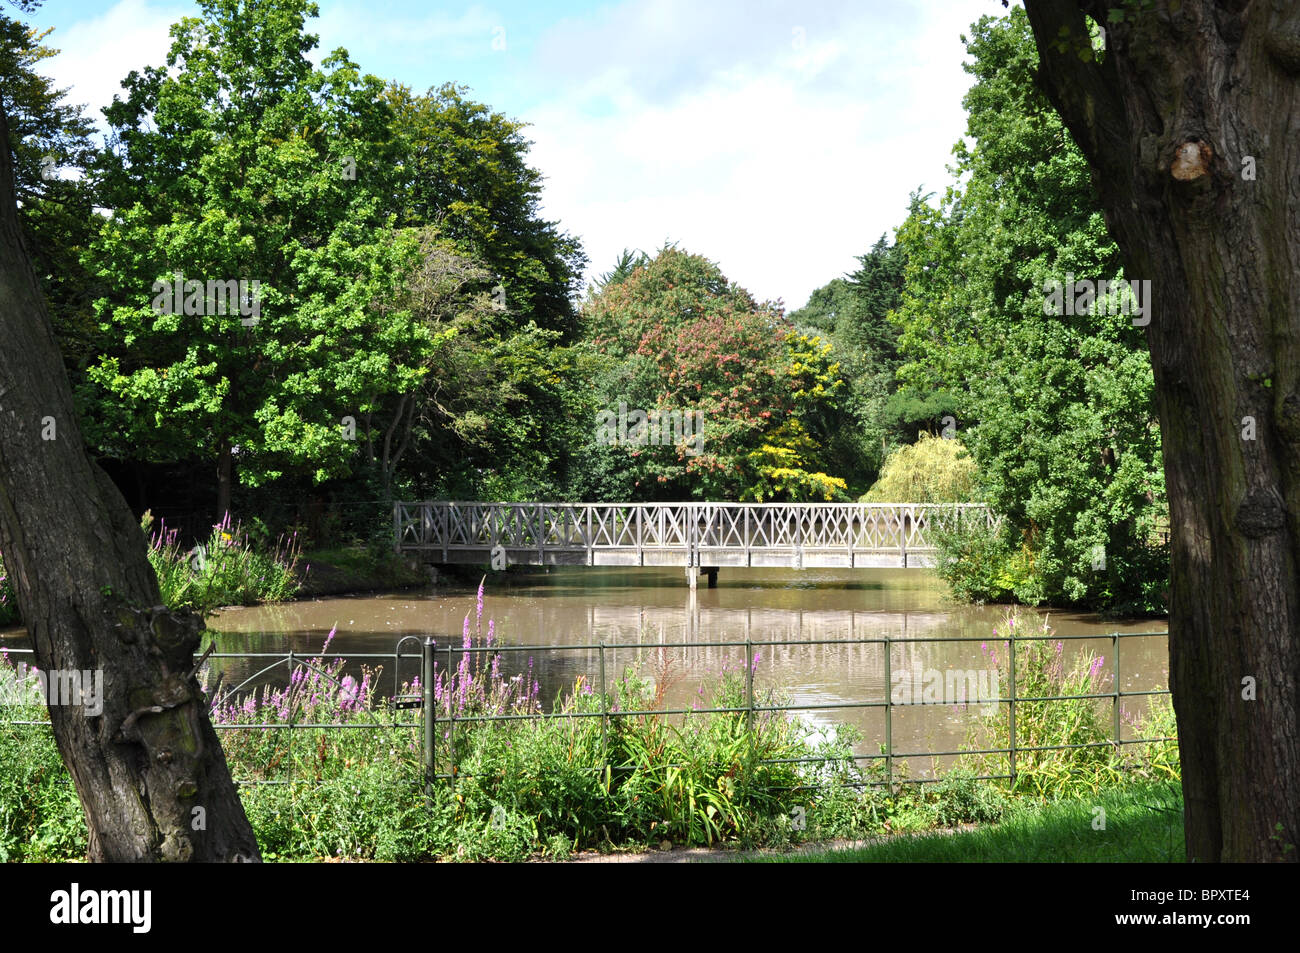 A bridge in Birkenhead park, Wirral, crossing a lake. - Stock Image